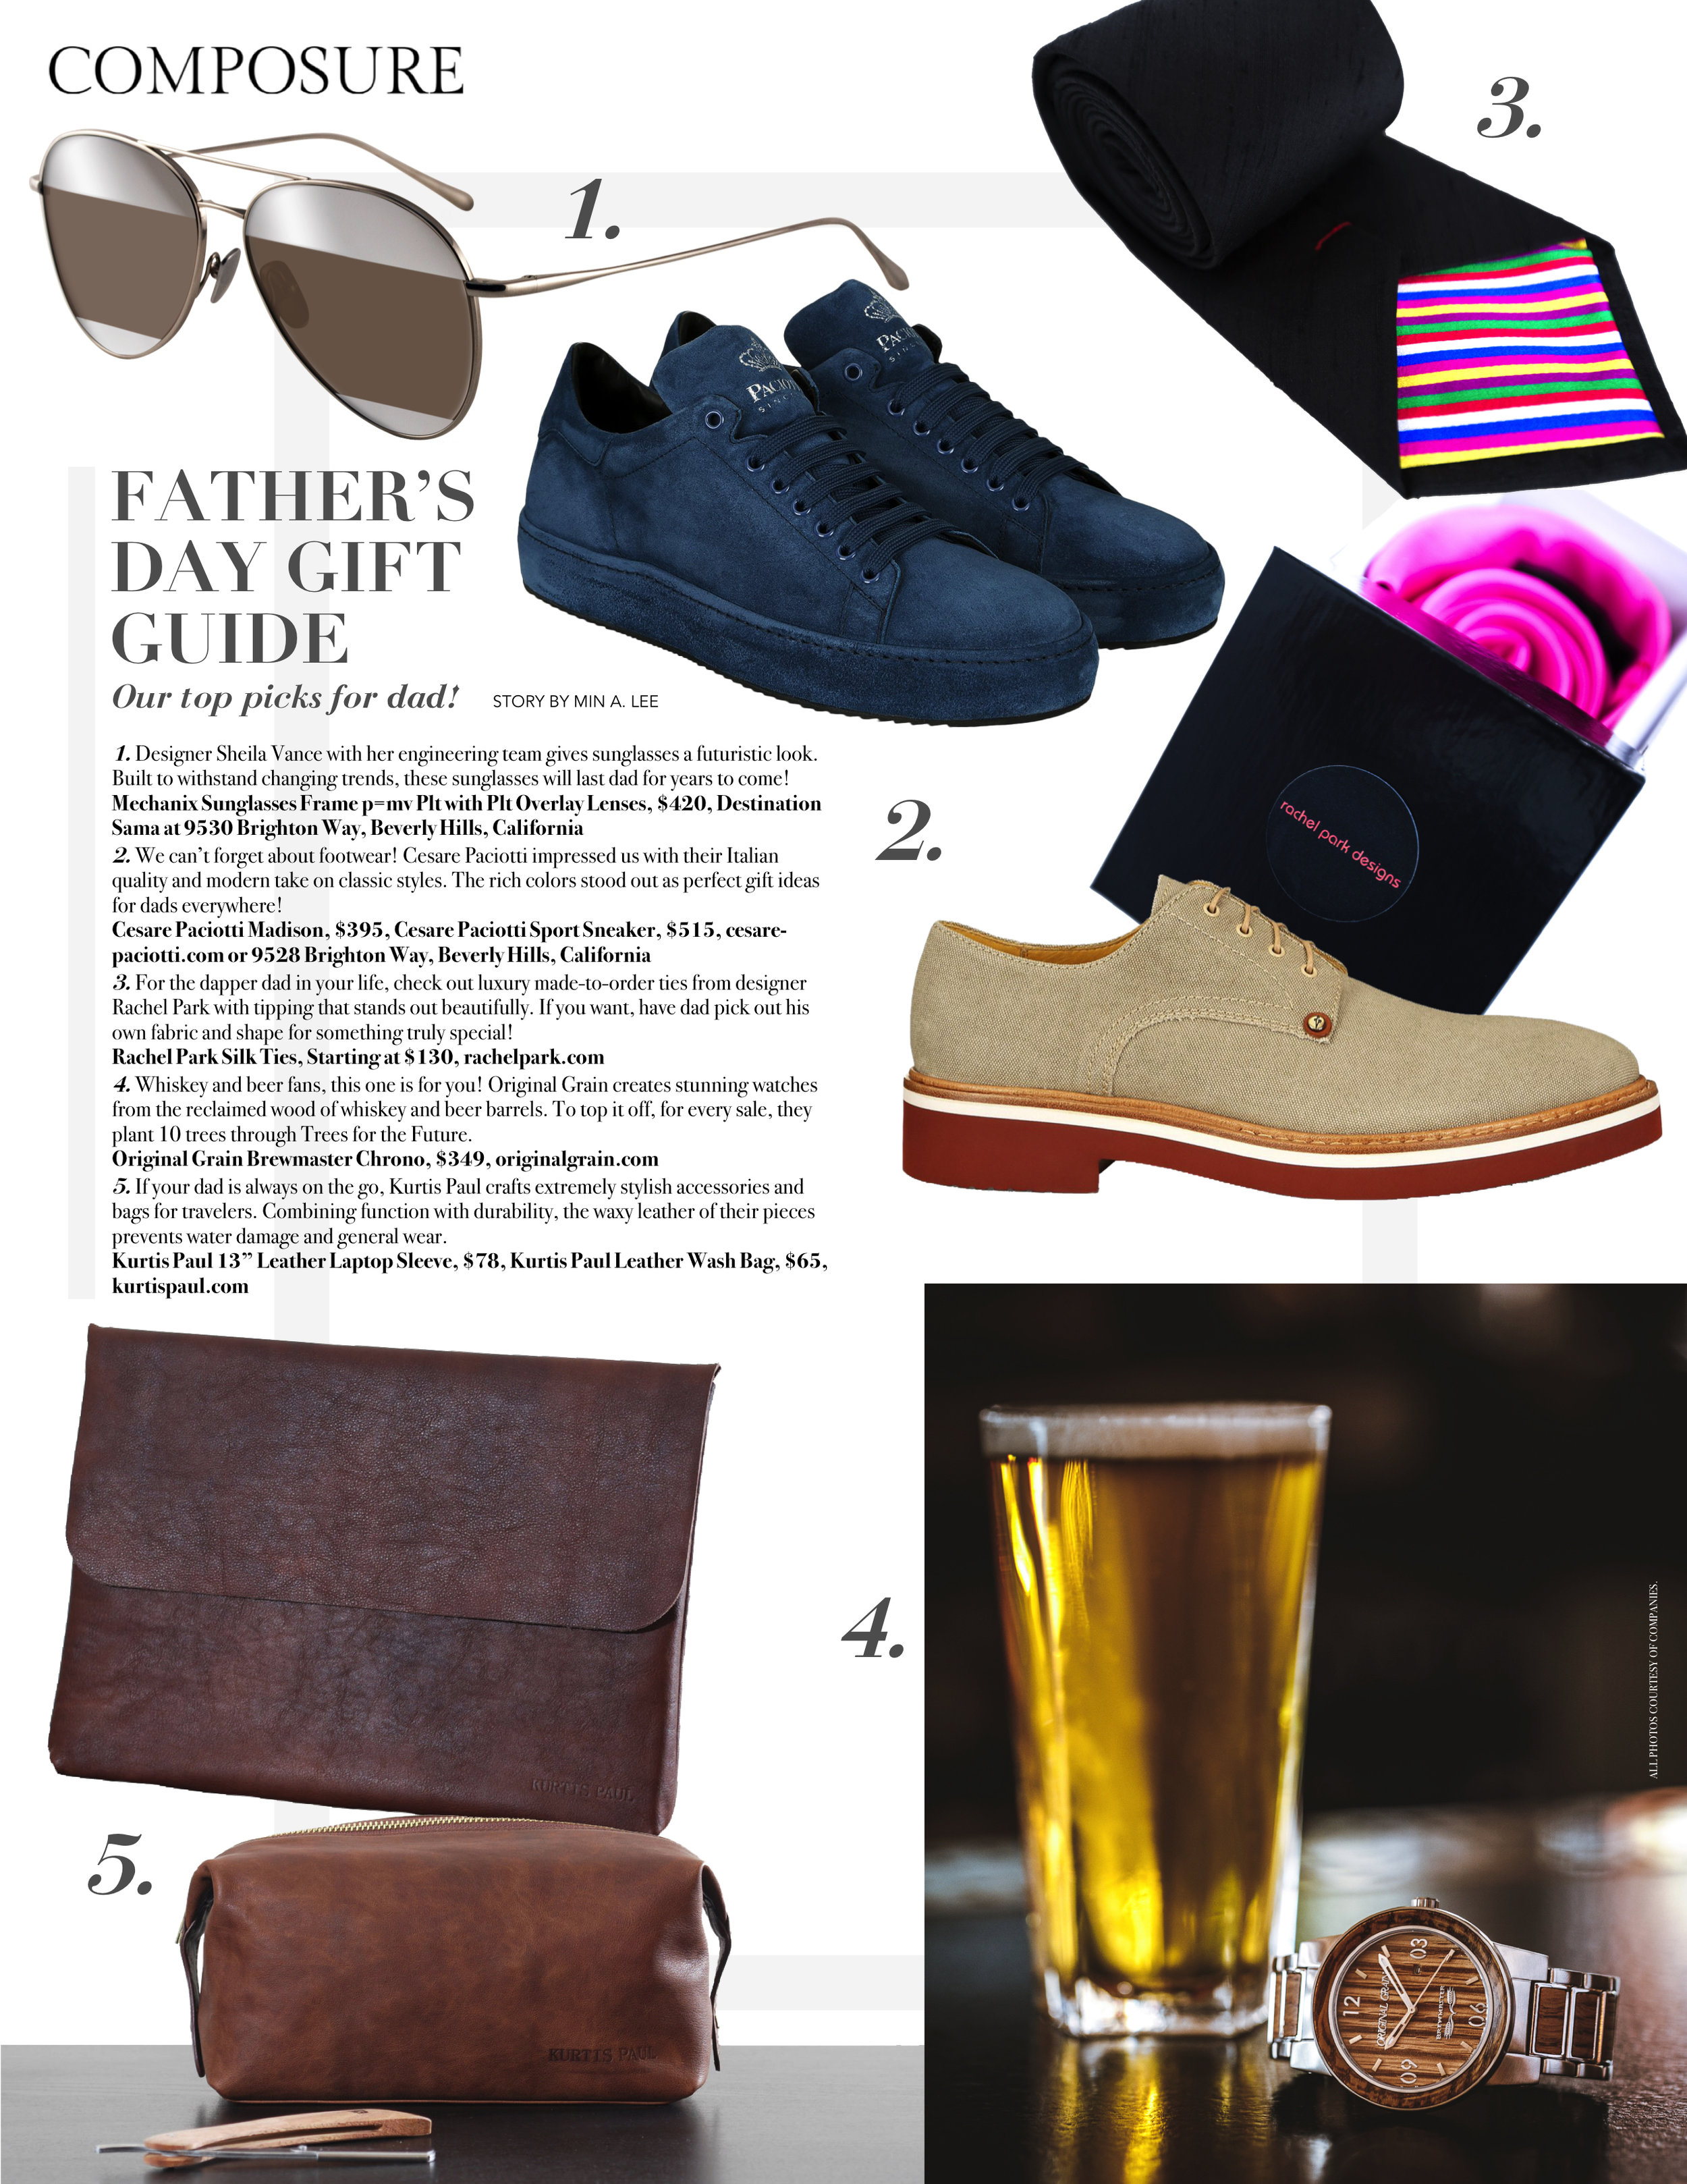 """HONORED to have a Rachel Park Designs tie featured by Min in her """"Father's Day Gift Guide""""for  Composure Magazine . ❤️ Photo: Composure Magazine"""